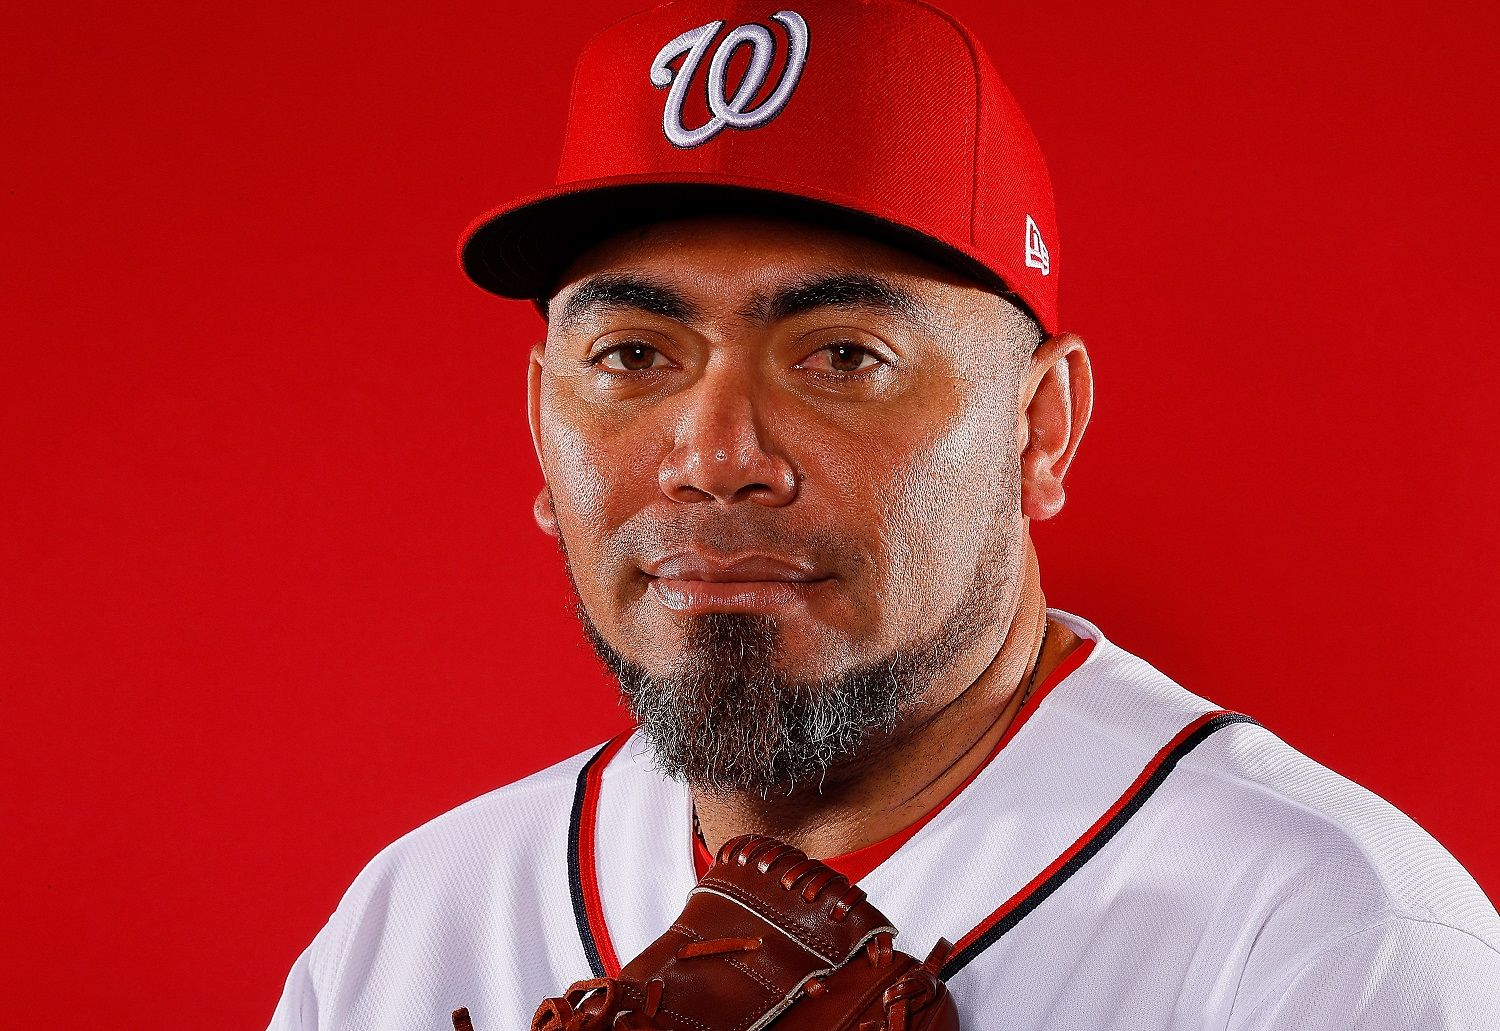 WEST PALM BEACH, FL - FEBRUARY 22:  Joaquin Benoit #53 of the Washington Nationals poses for a photo during photo days at The Ballpark of the Palm Beaches on February 22, 2018 in West Palm Beach, Florida.  (Photo by Kevin C. Cox/Getty Images)